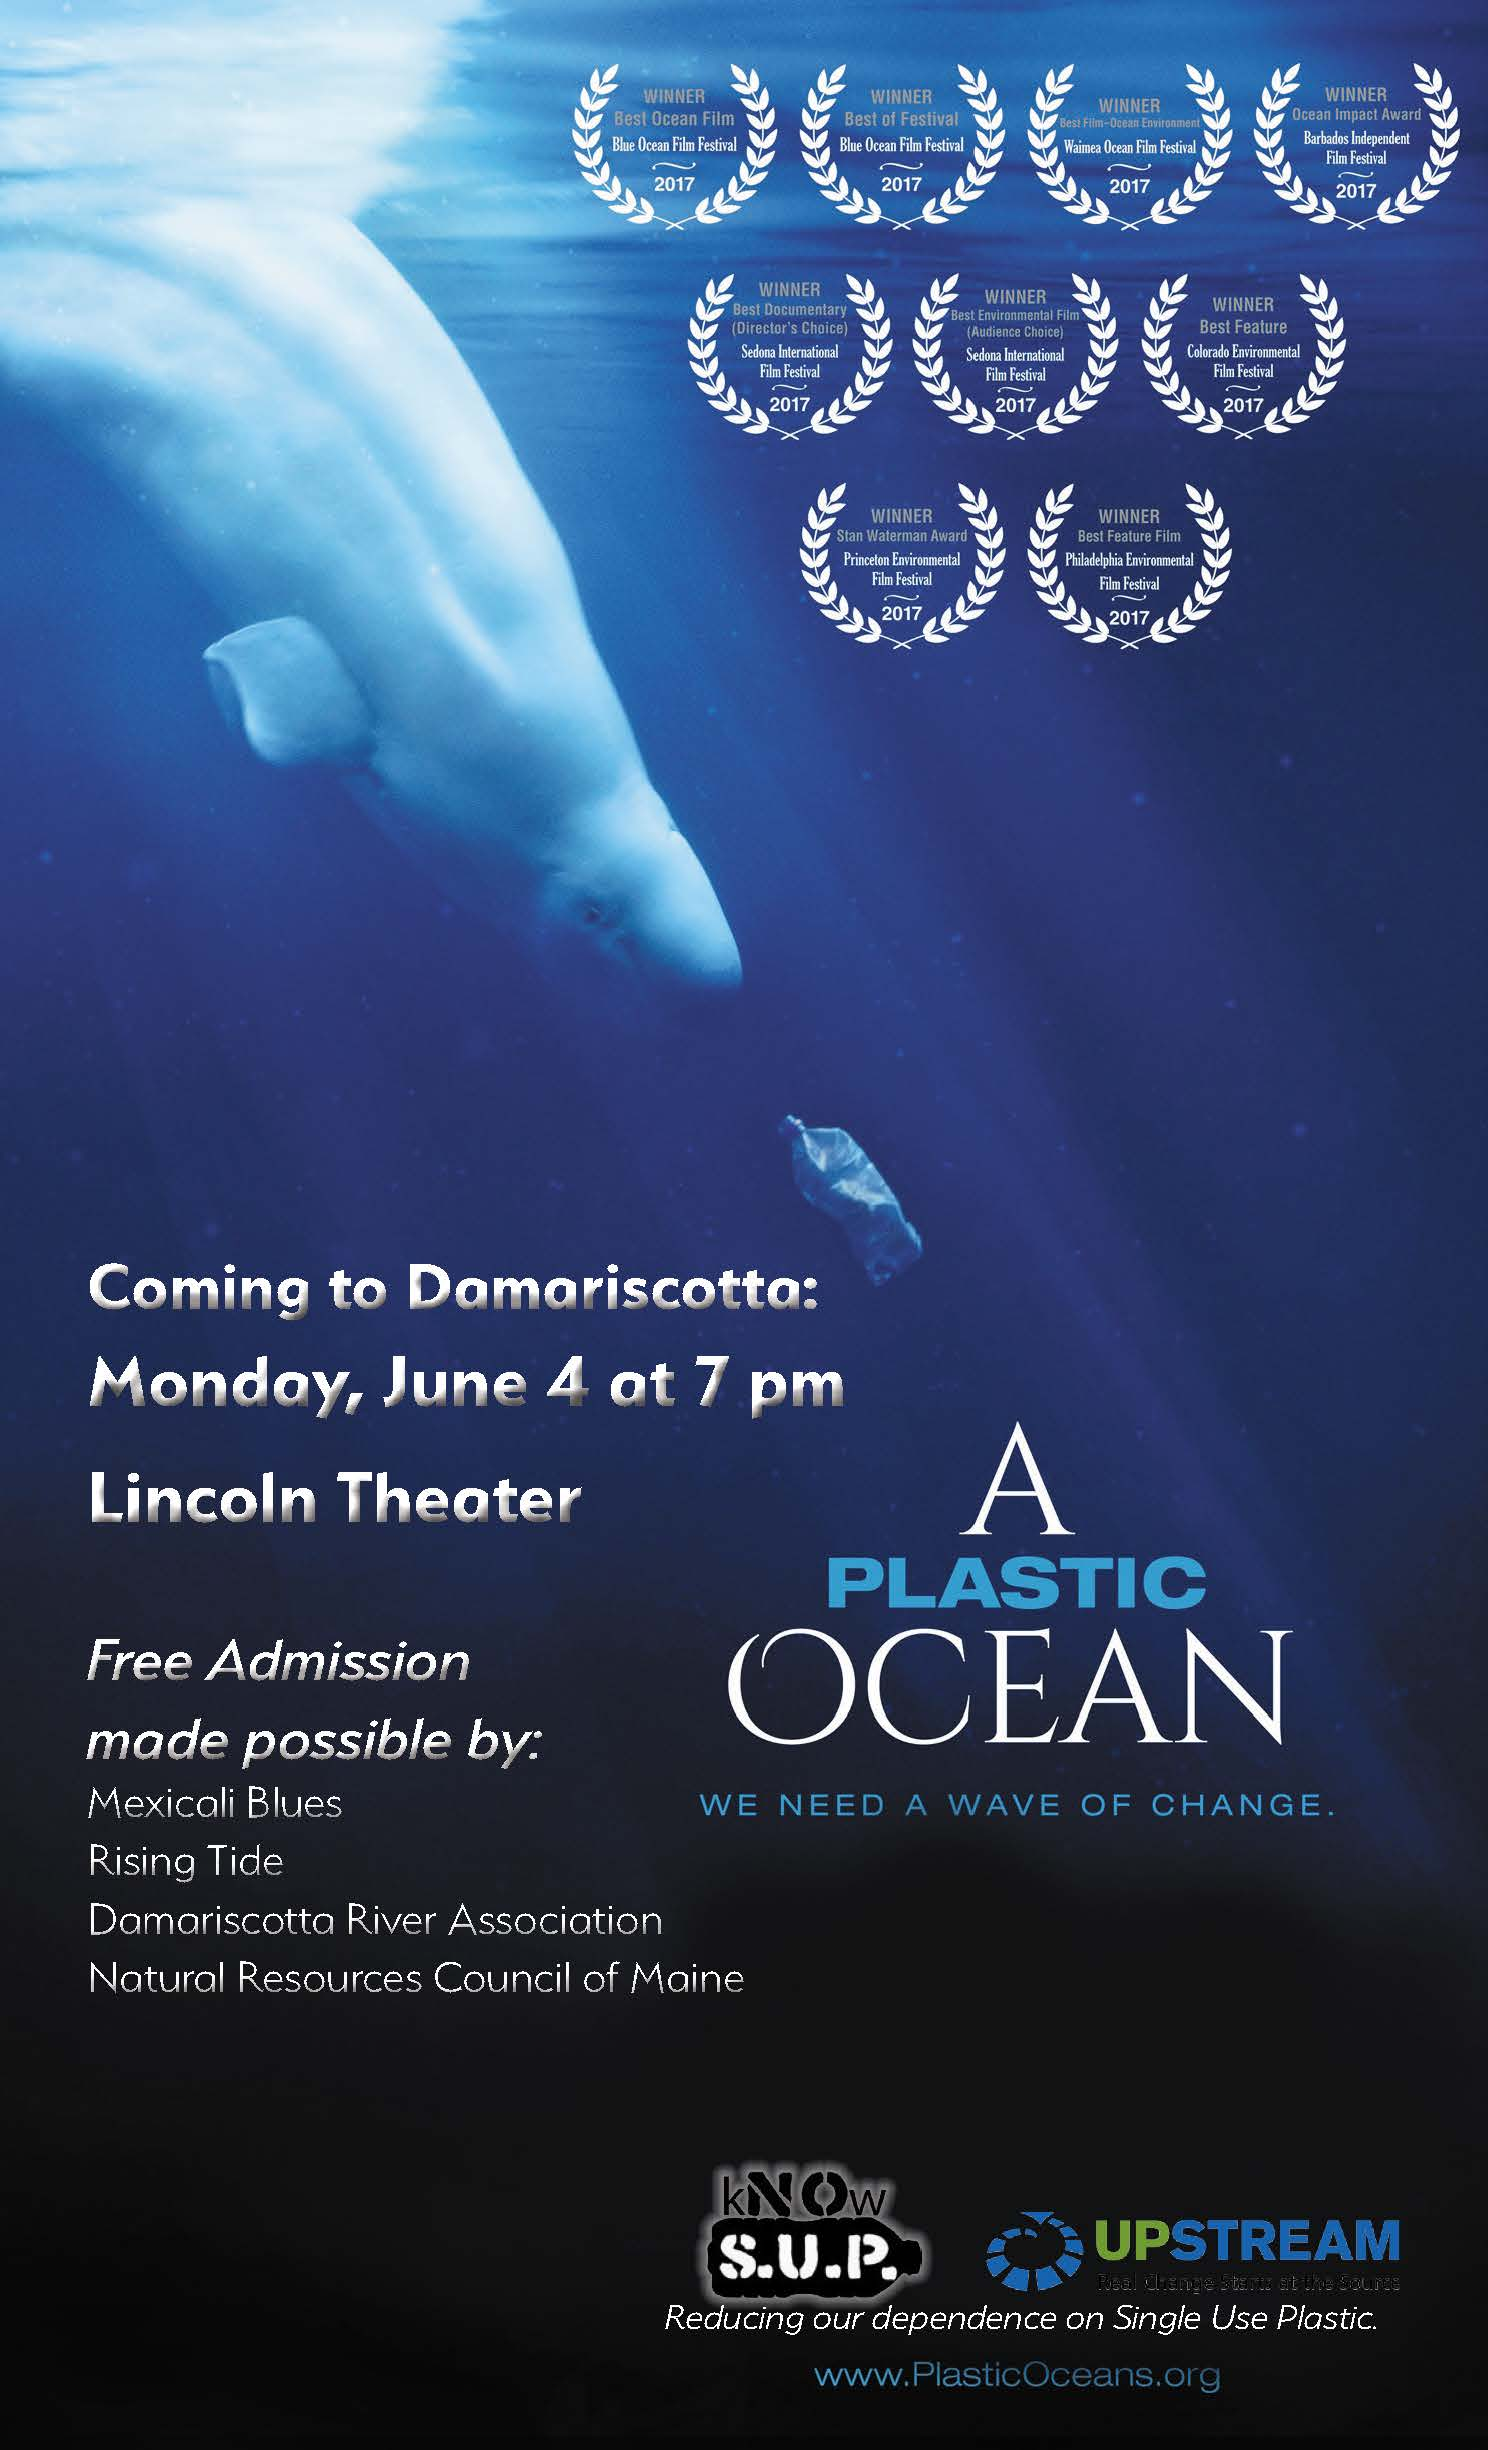 A Plastic Ocean movie screening